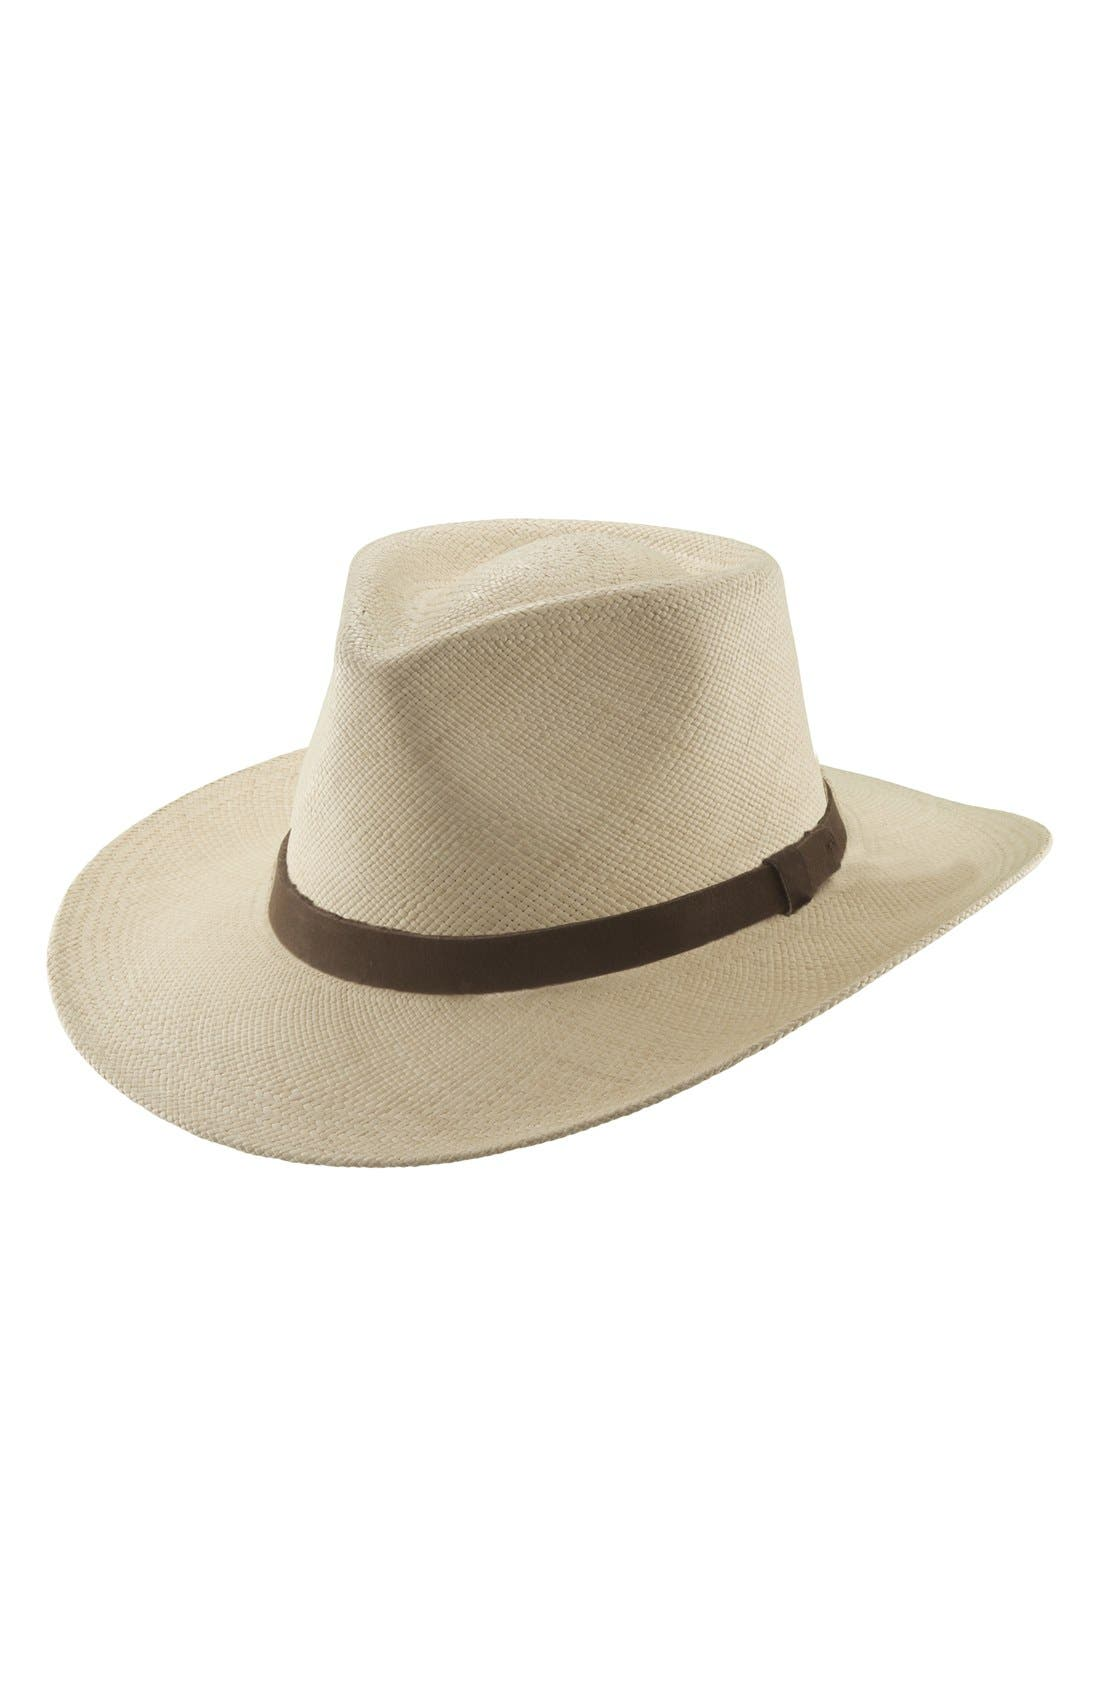 Straw Outback Hat,                             Main thumbnail 1, color,                             101